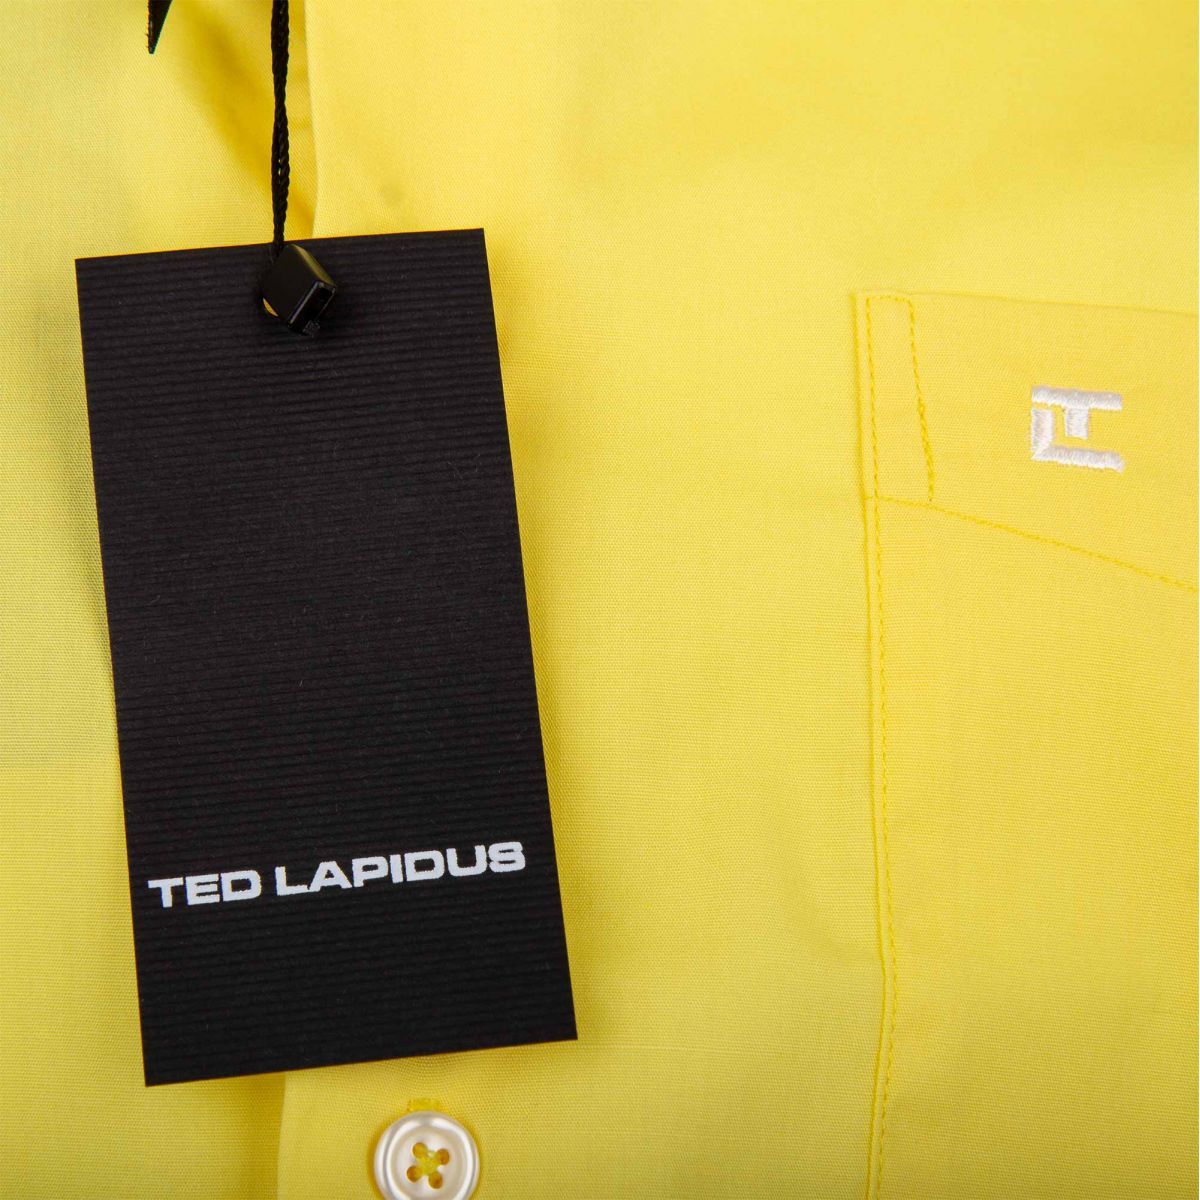 9f20cf47a11 chemise-jaune-manches-courtes-homme-ted-lapidus.jpg